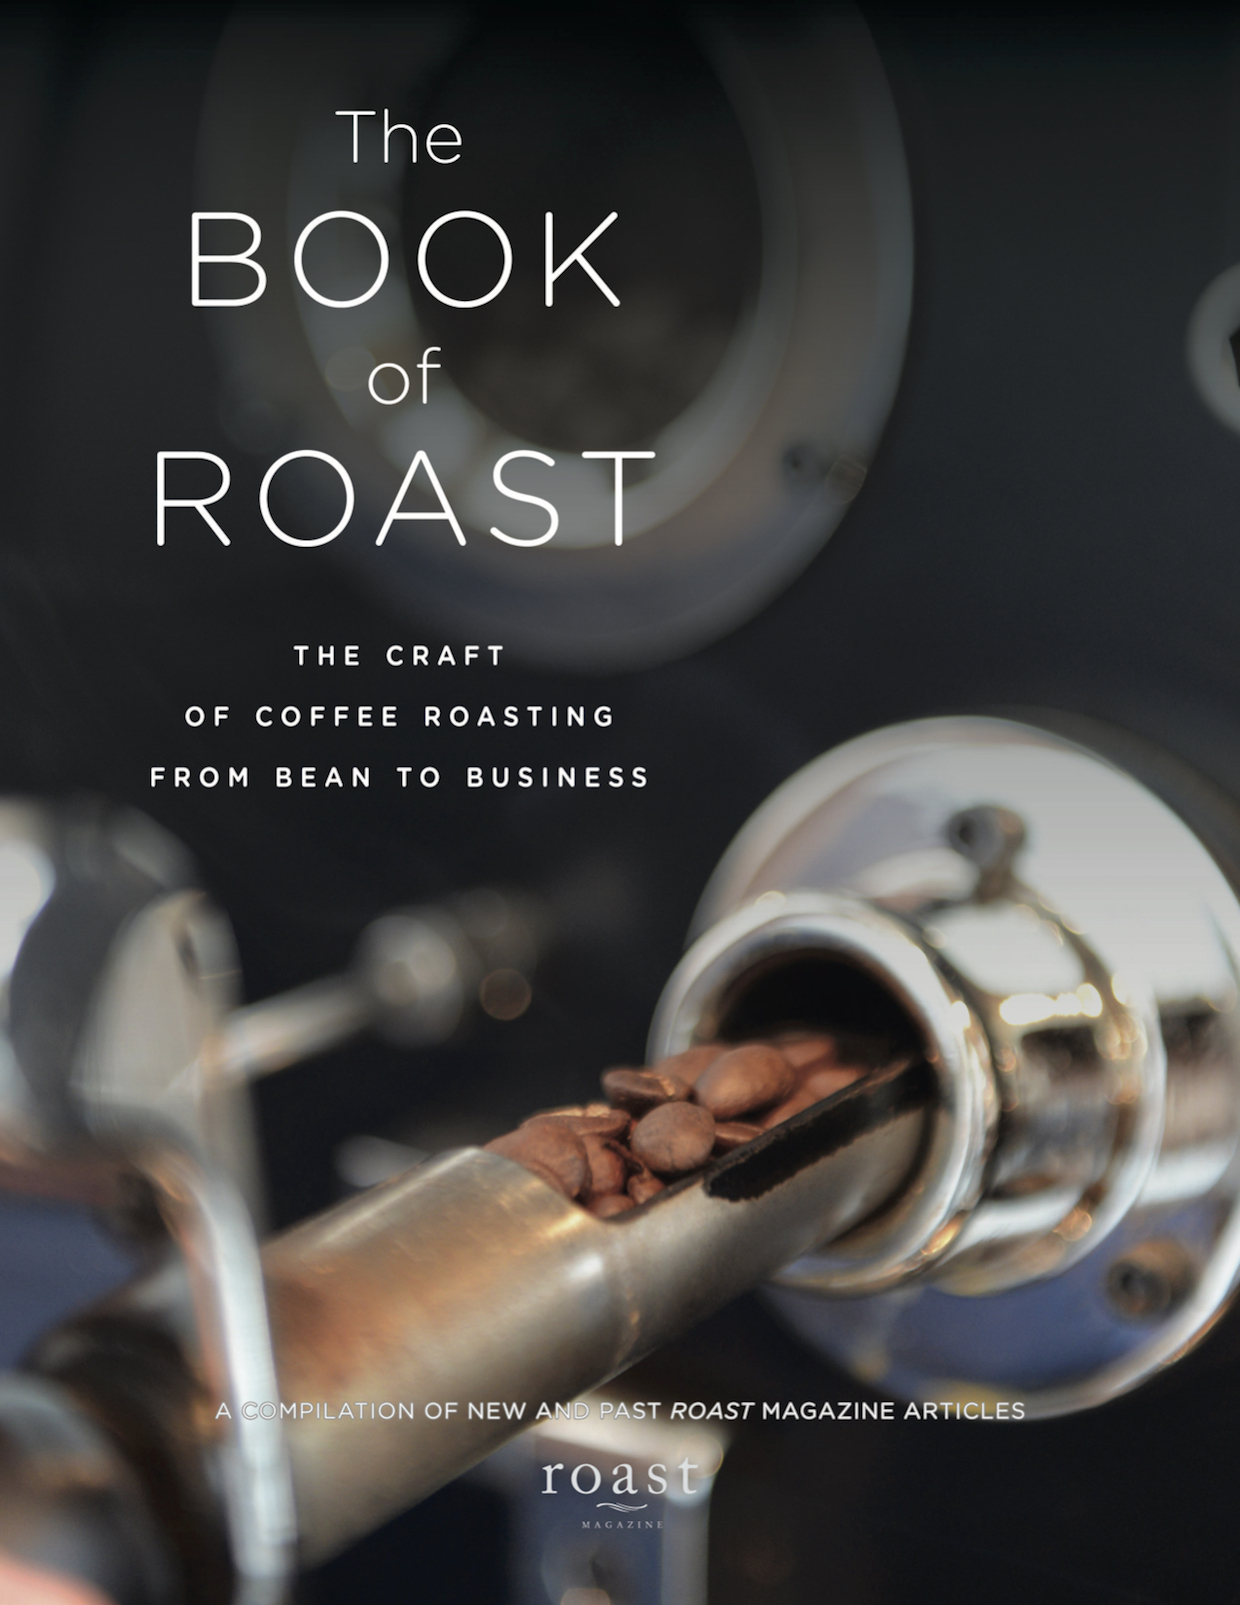 TheBookofRoast_Cover